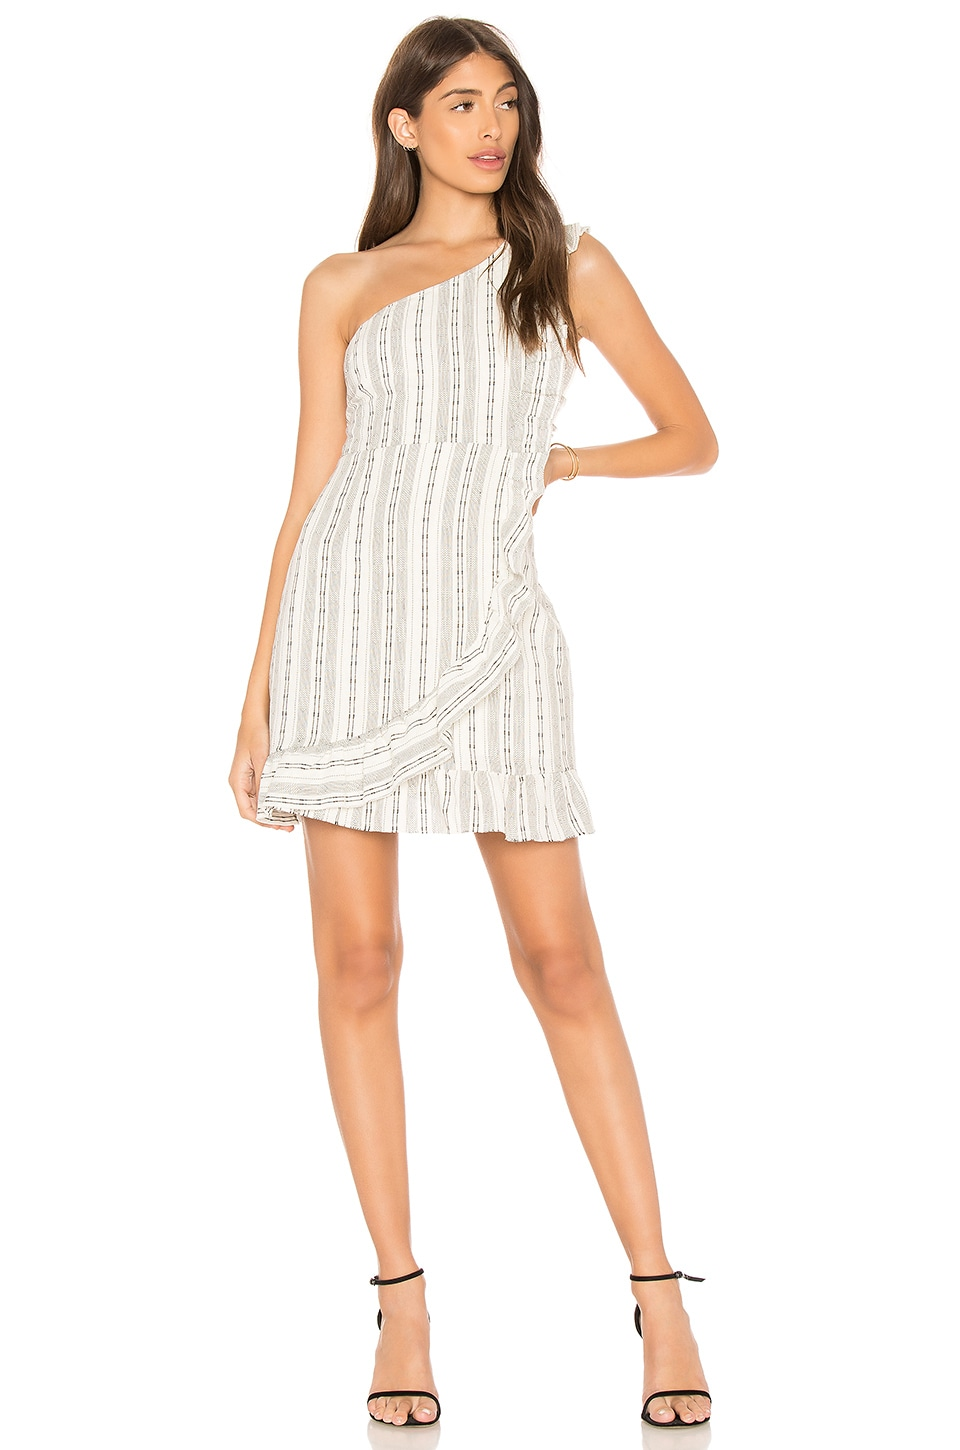 Line & Dot Edna One Shoulder Dress in White & Black